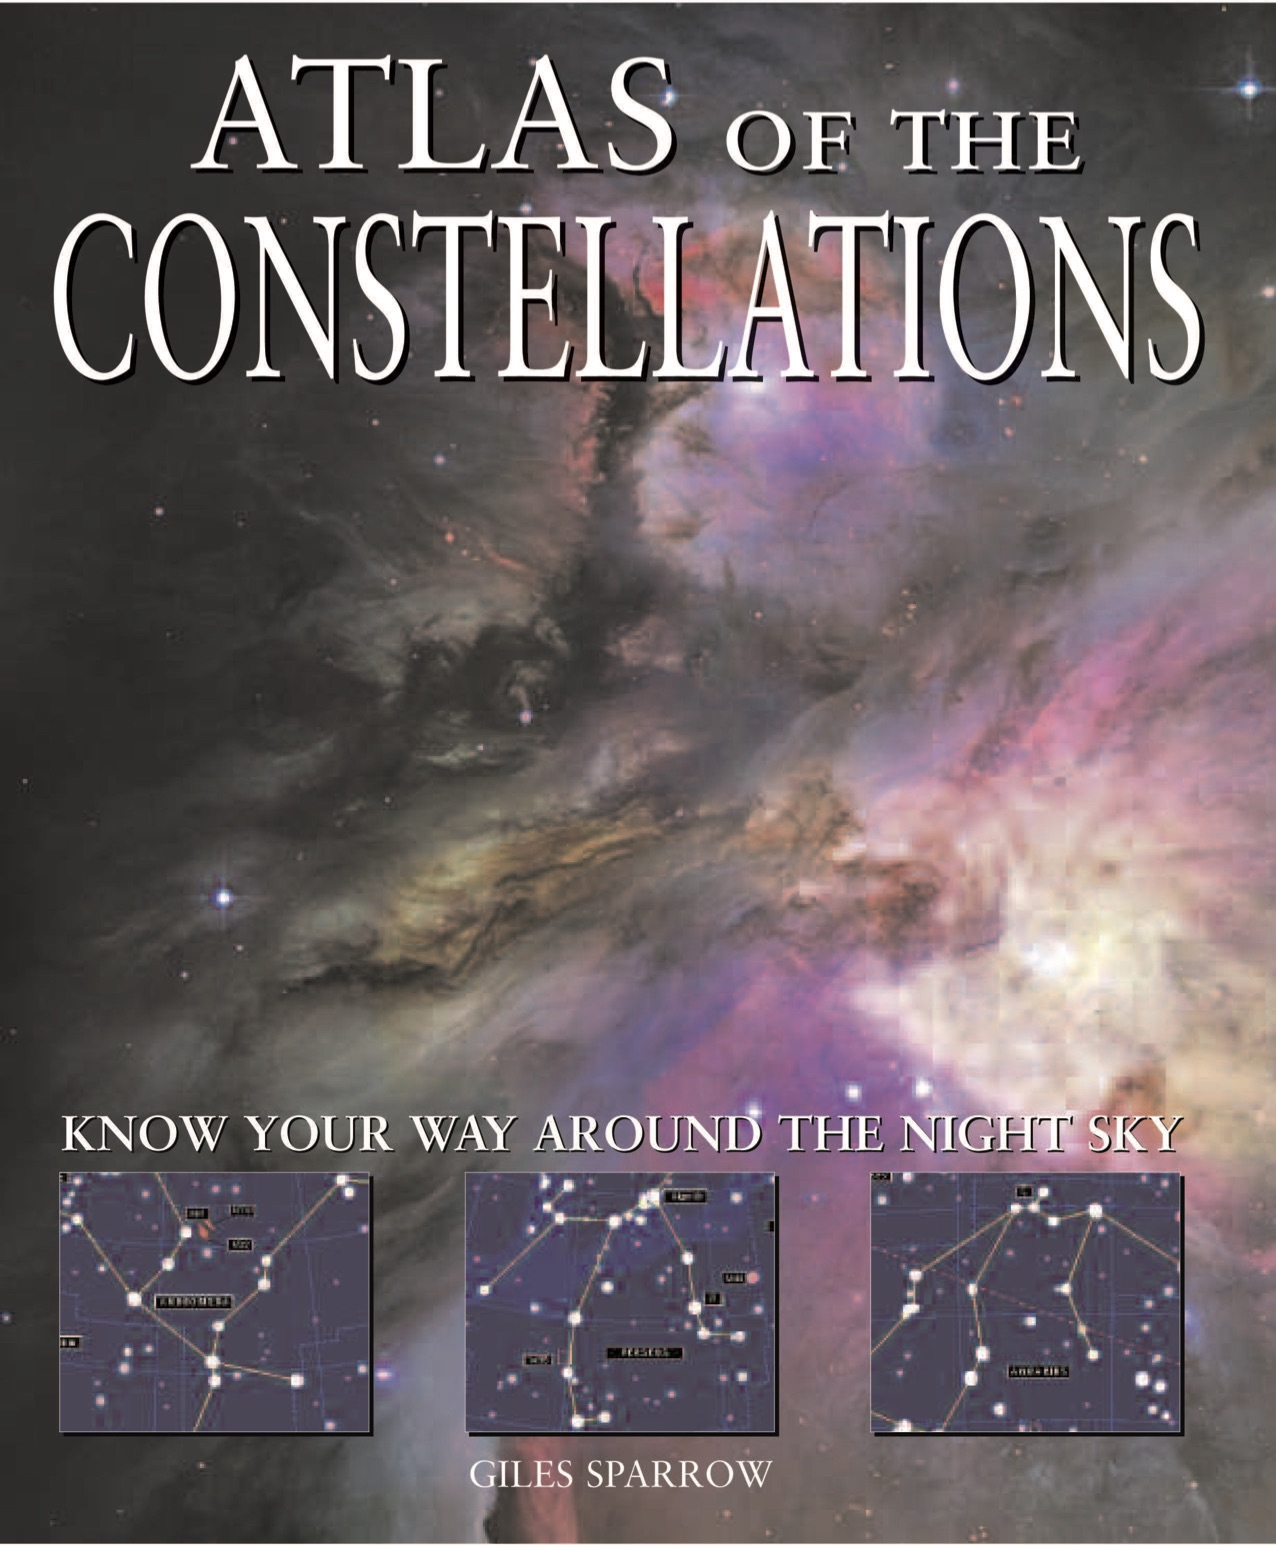 The Atlas of the Constellations